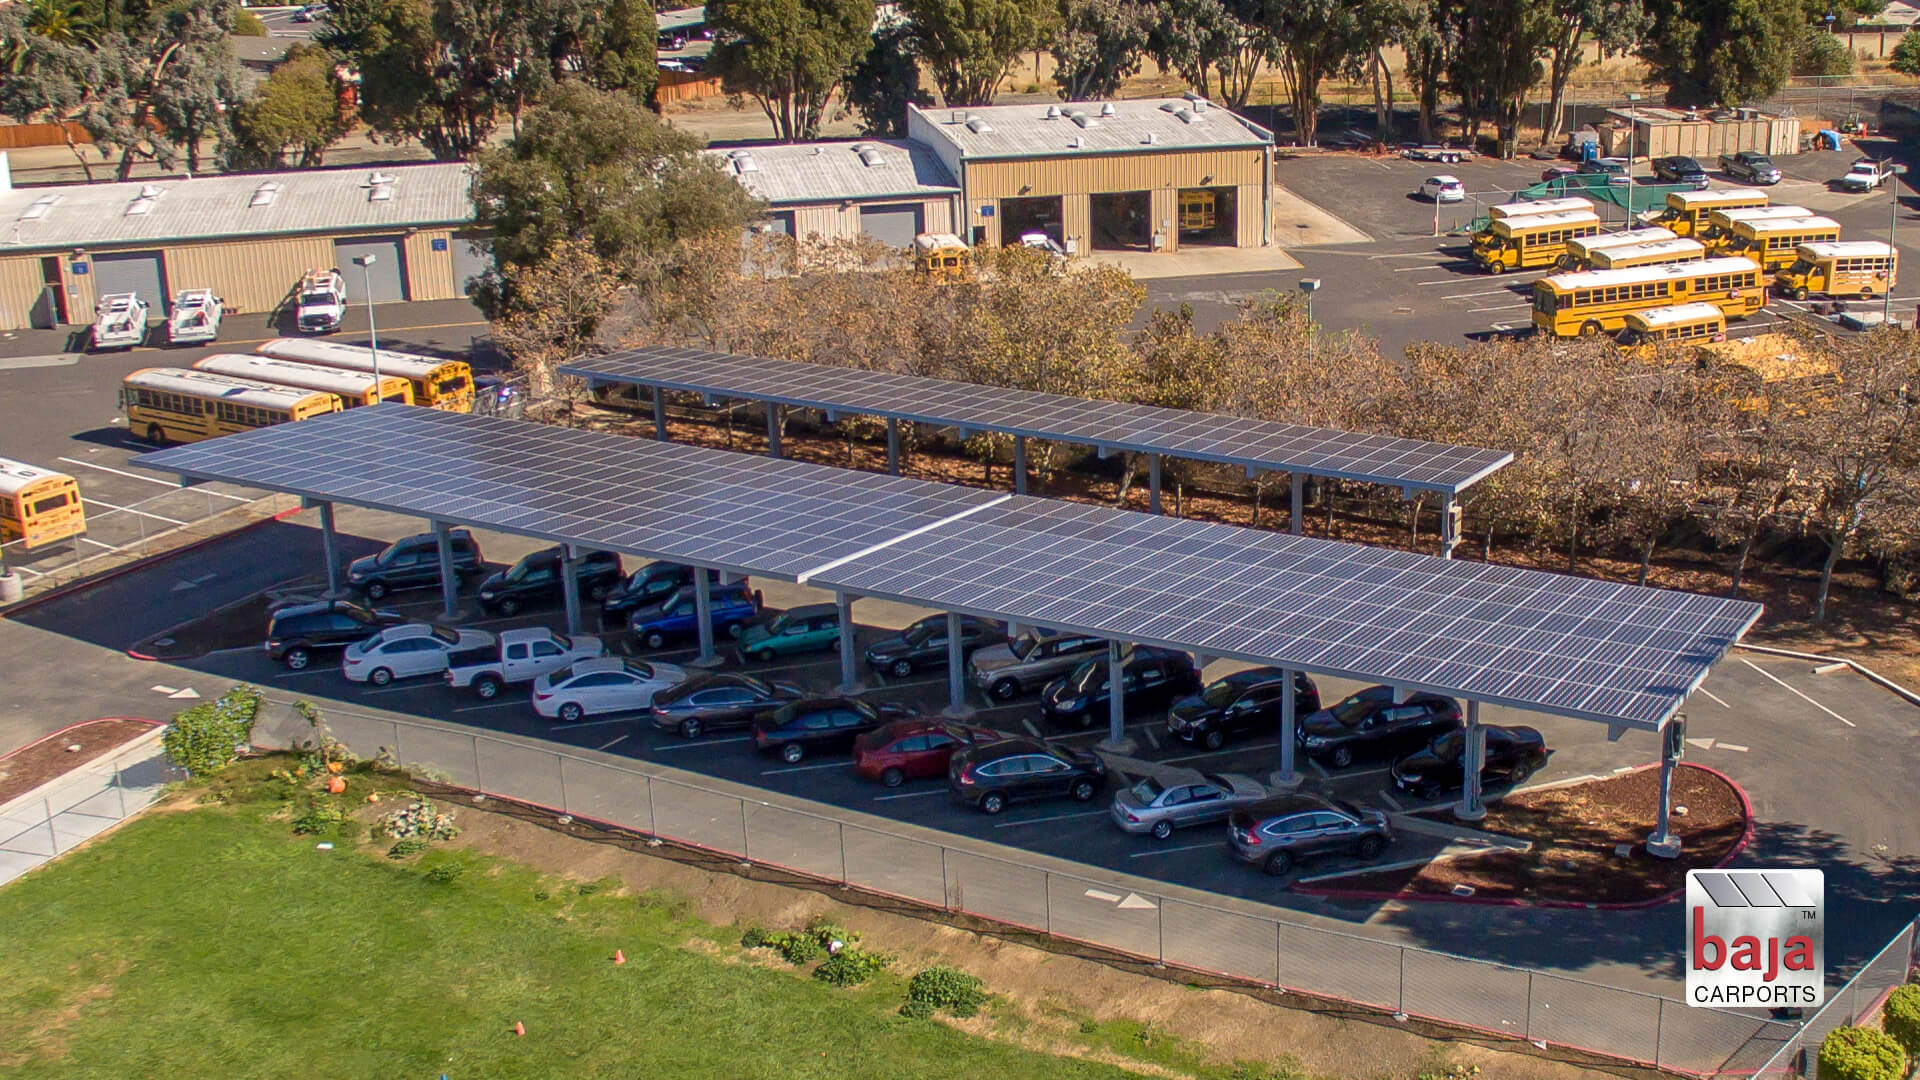 union city elementary faculty park under solar carports